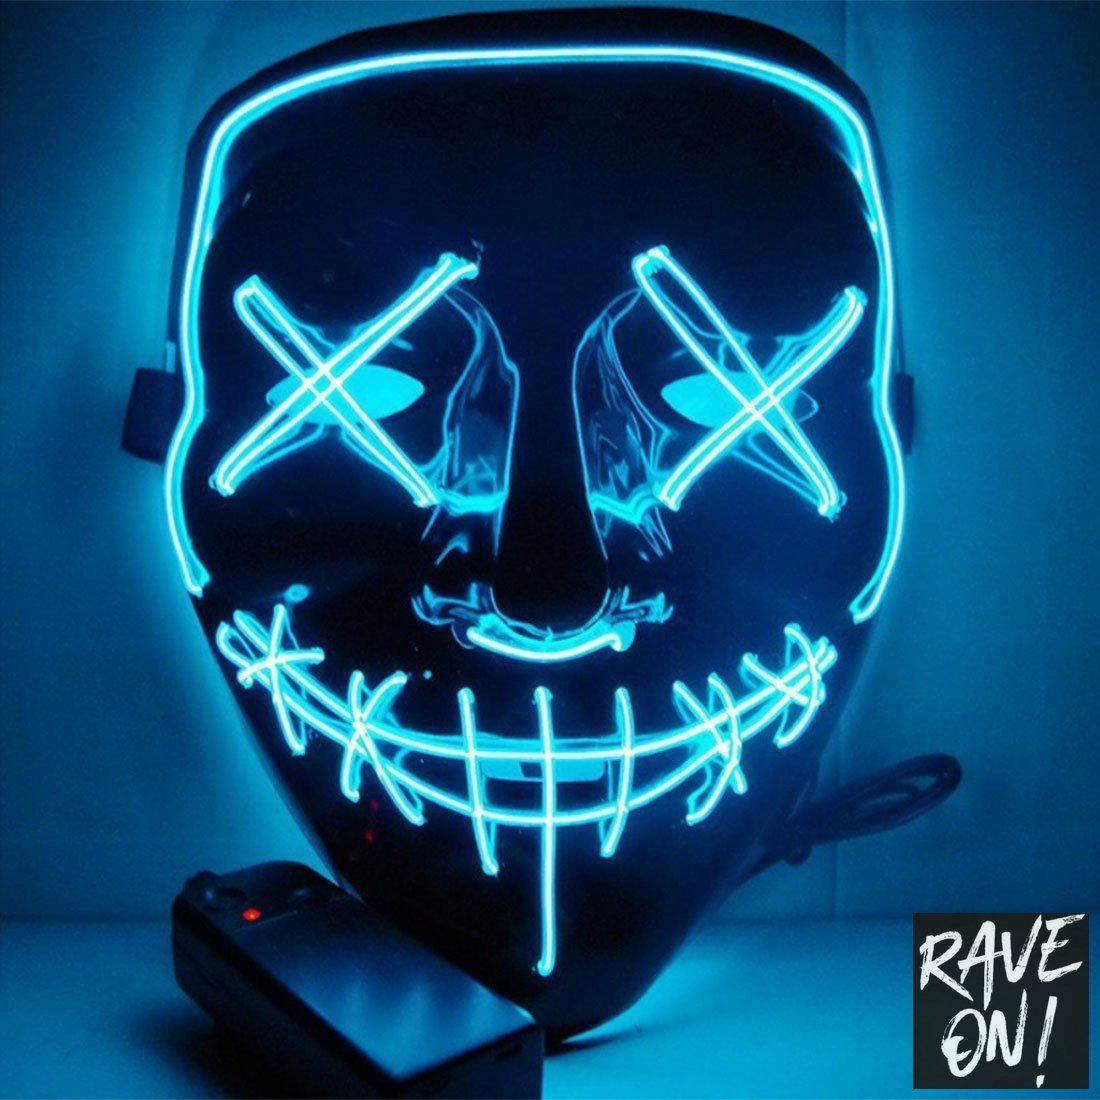 LED Grimassen Maske-Ice Blau-Rave-On!